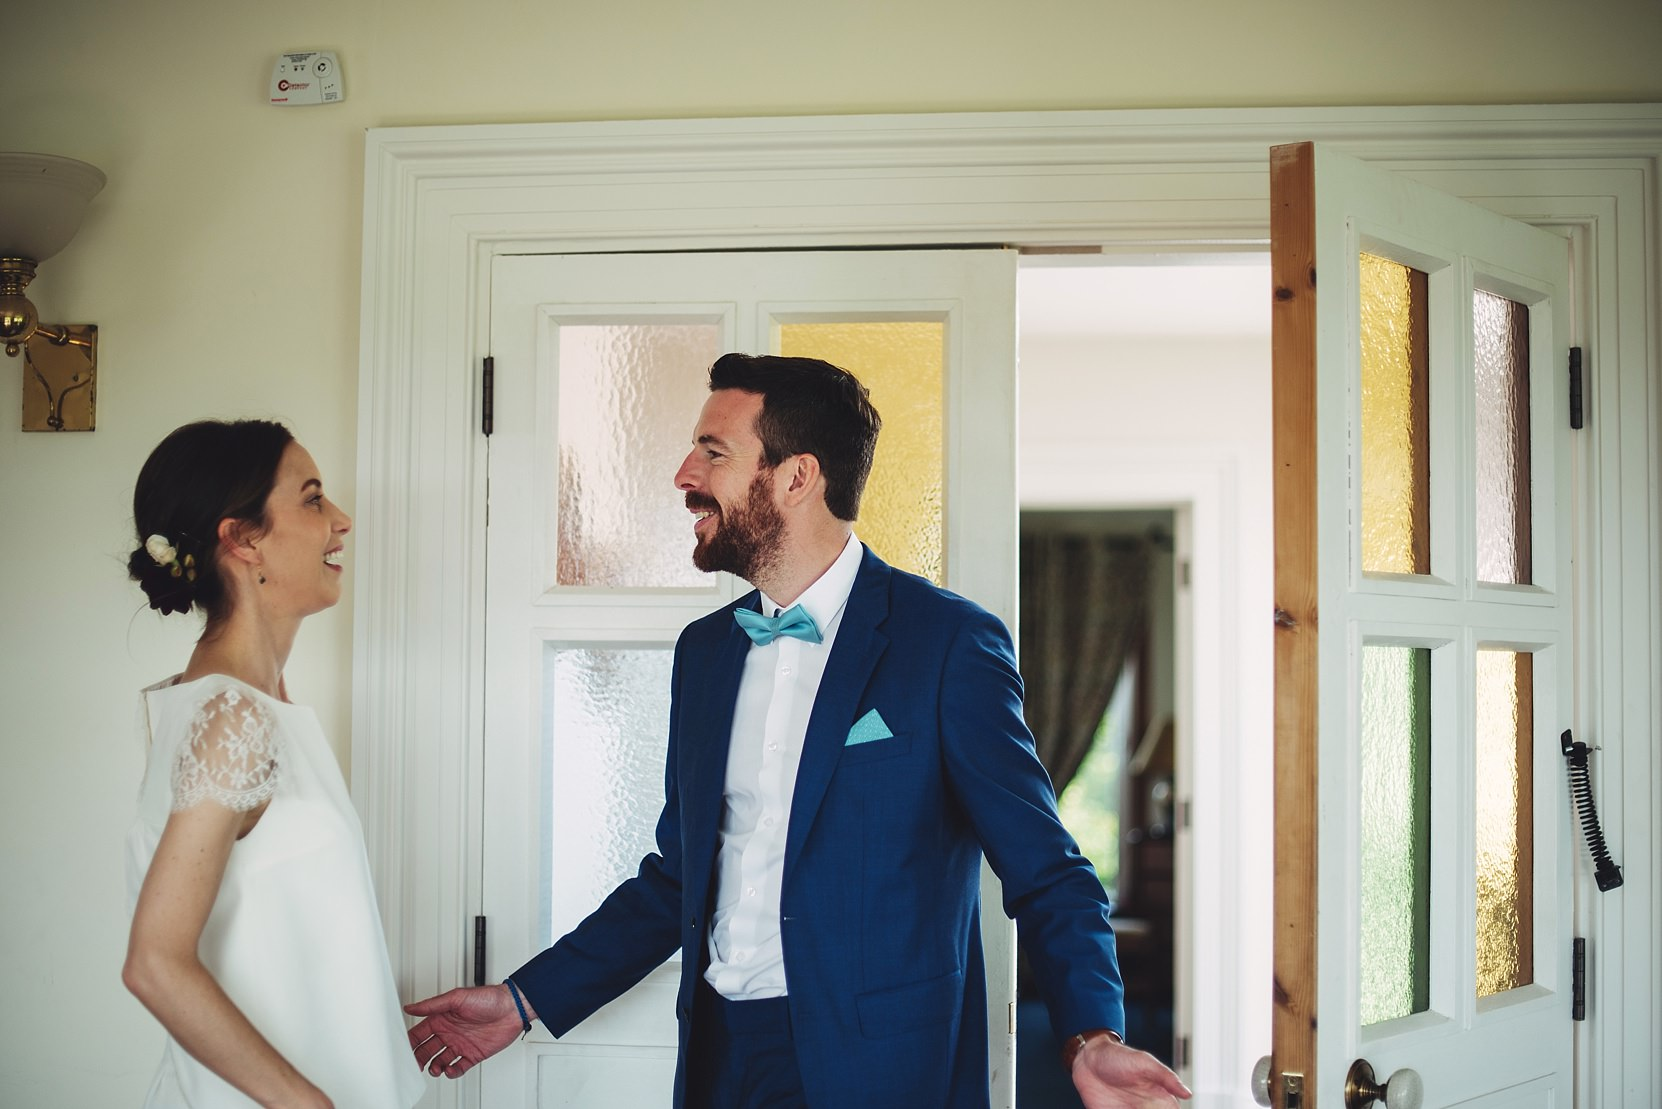 A first look at a wedding with the bride and groom